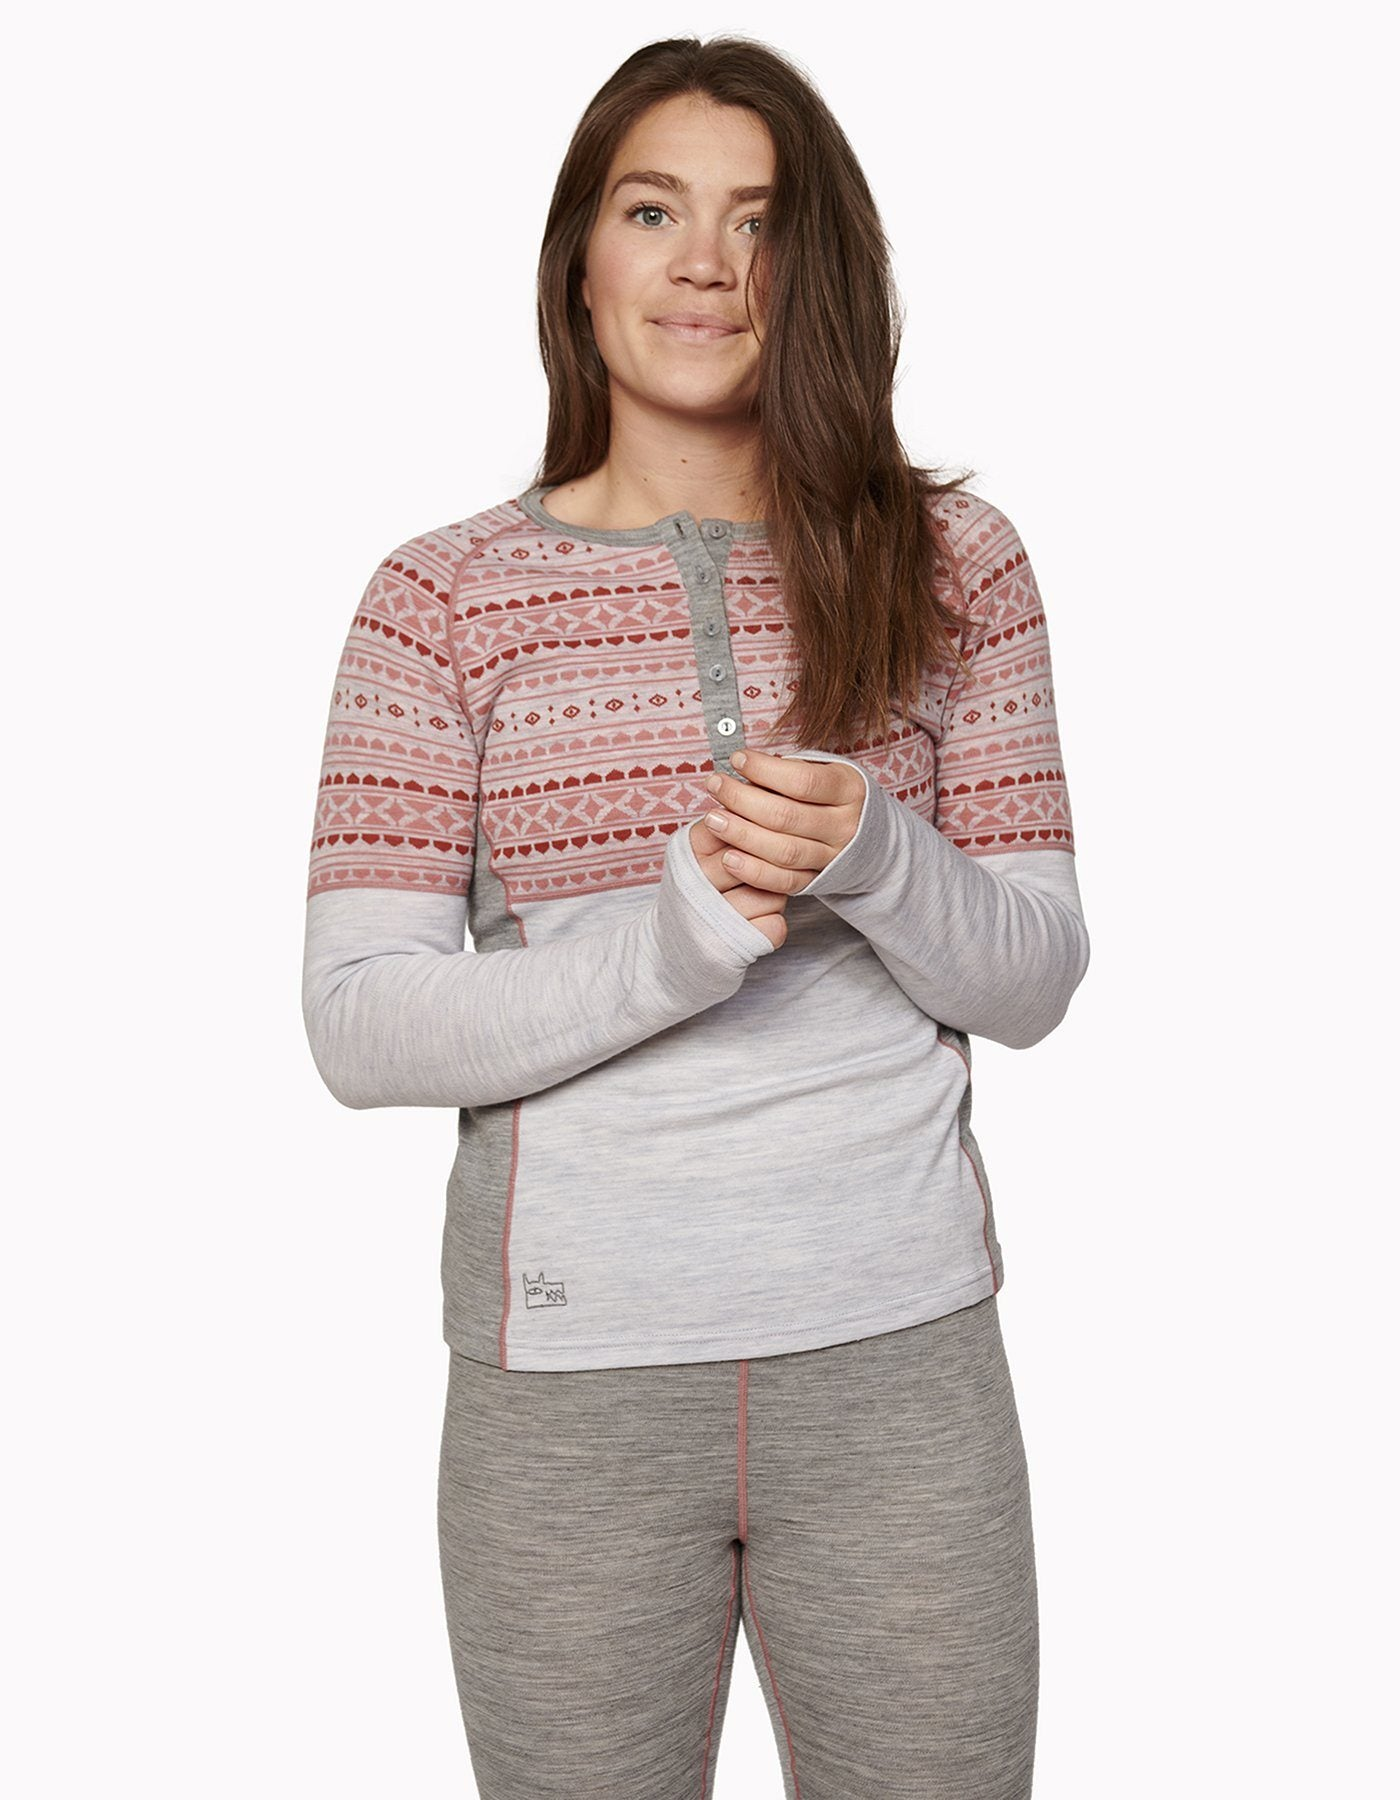 Varg - Women's Blanktjärn Wool Jersey - Winter Grey/Dalarna - Merino Wool - Weekendbee - sustainable sportswear